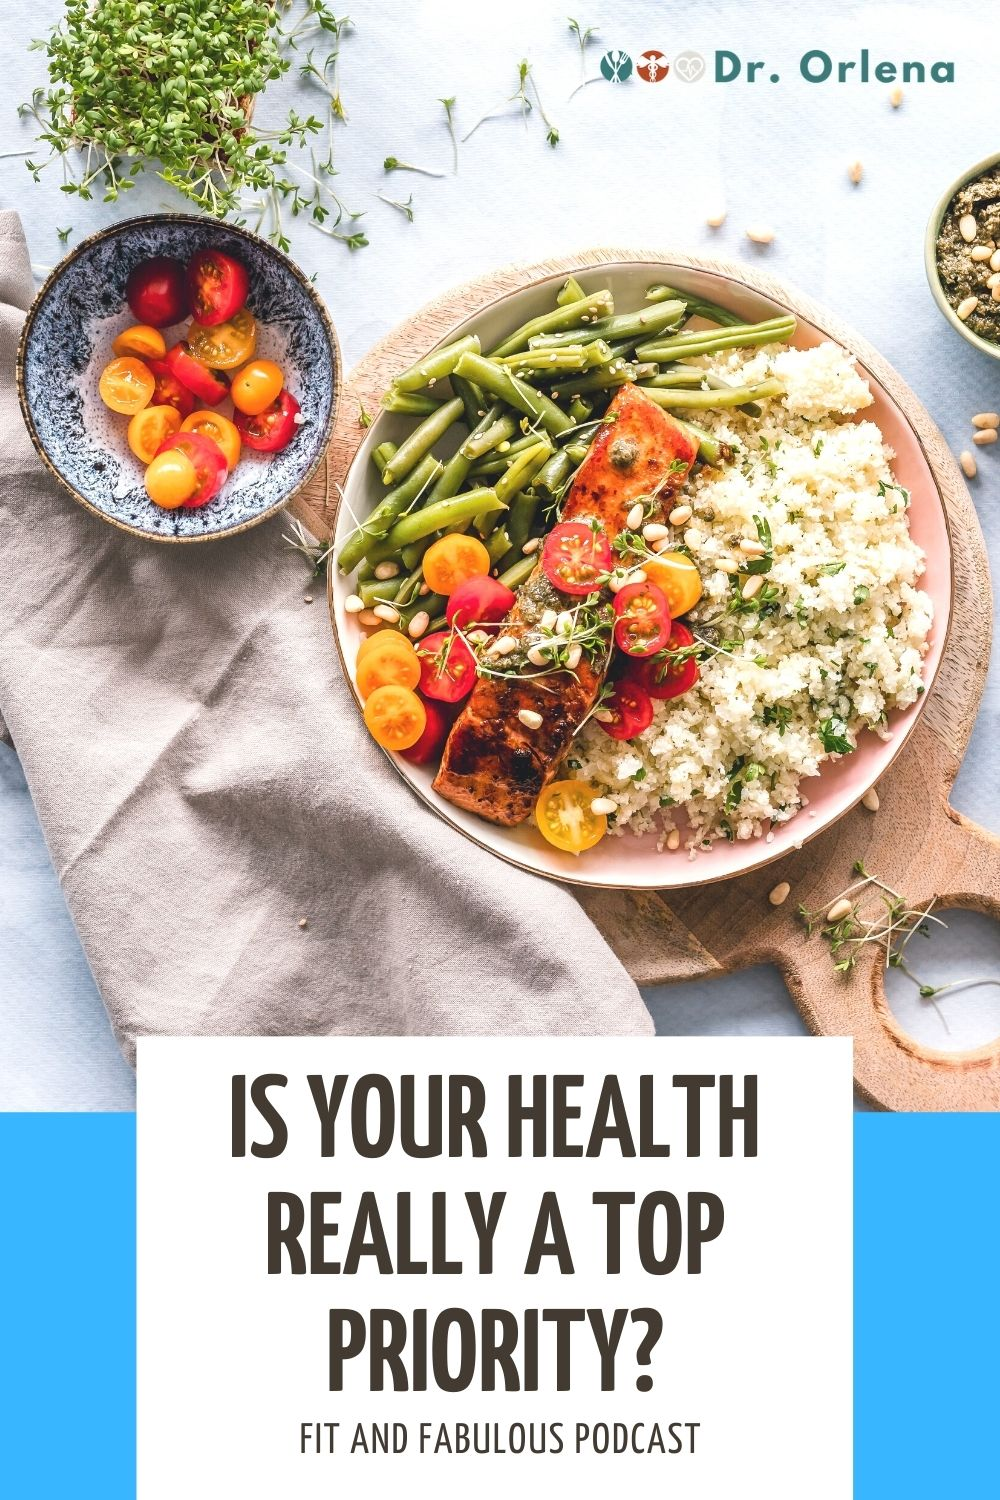 Flatlay photo of a healthy meal consisting of cauliflower rice, tomatoes, string beans and smoked fish #health #lifestyle #wellness #healthylifestyle #healthylife